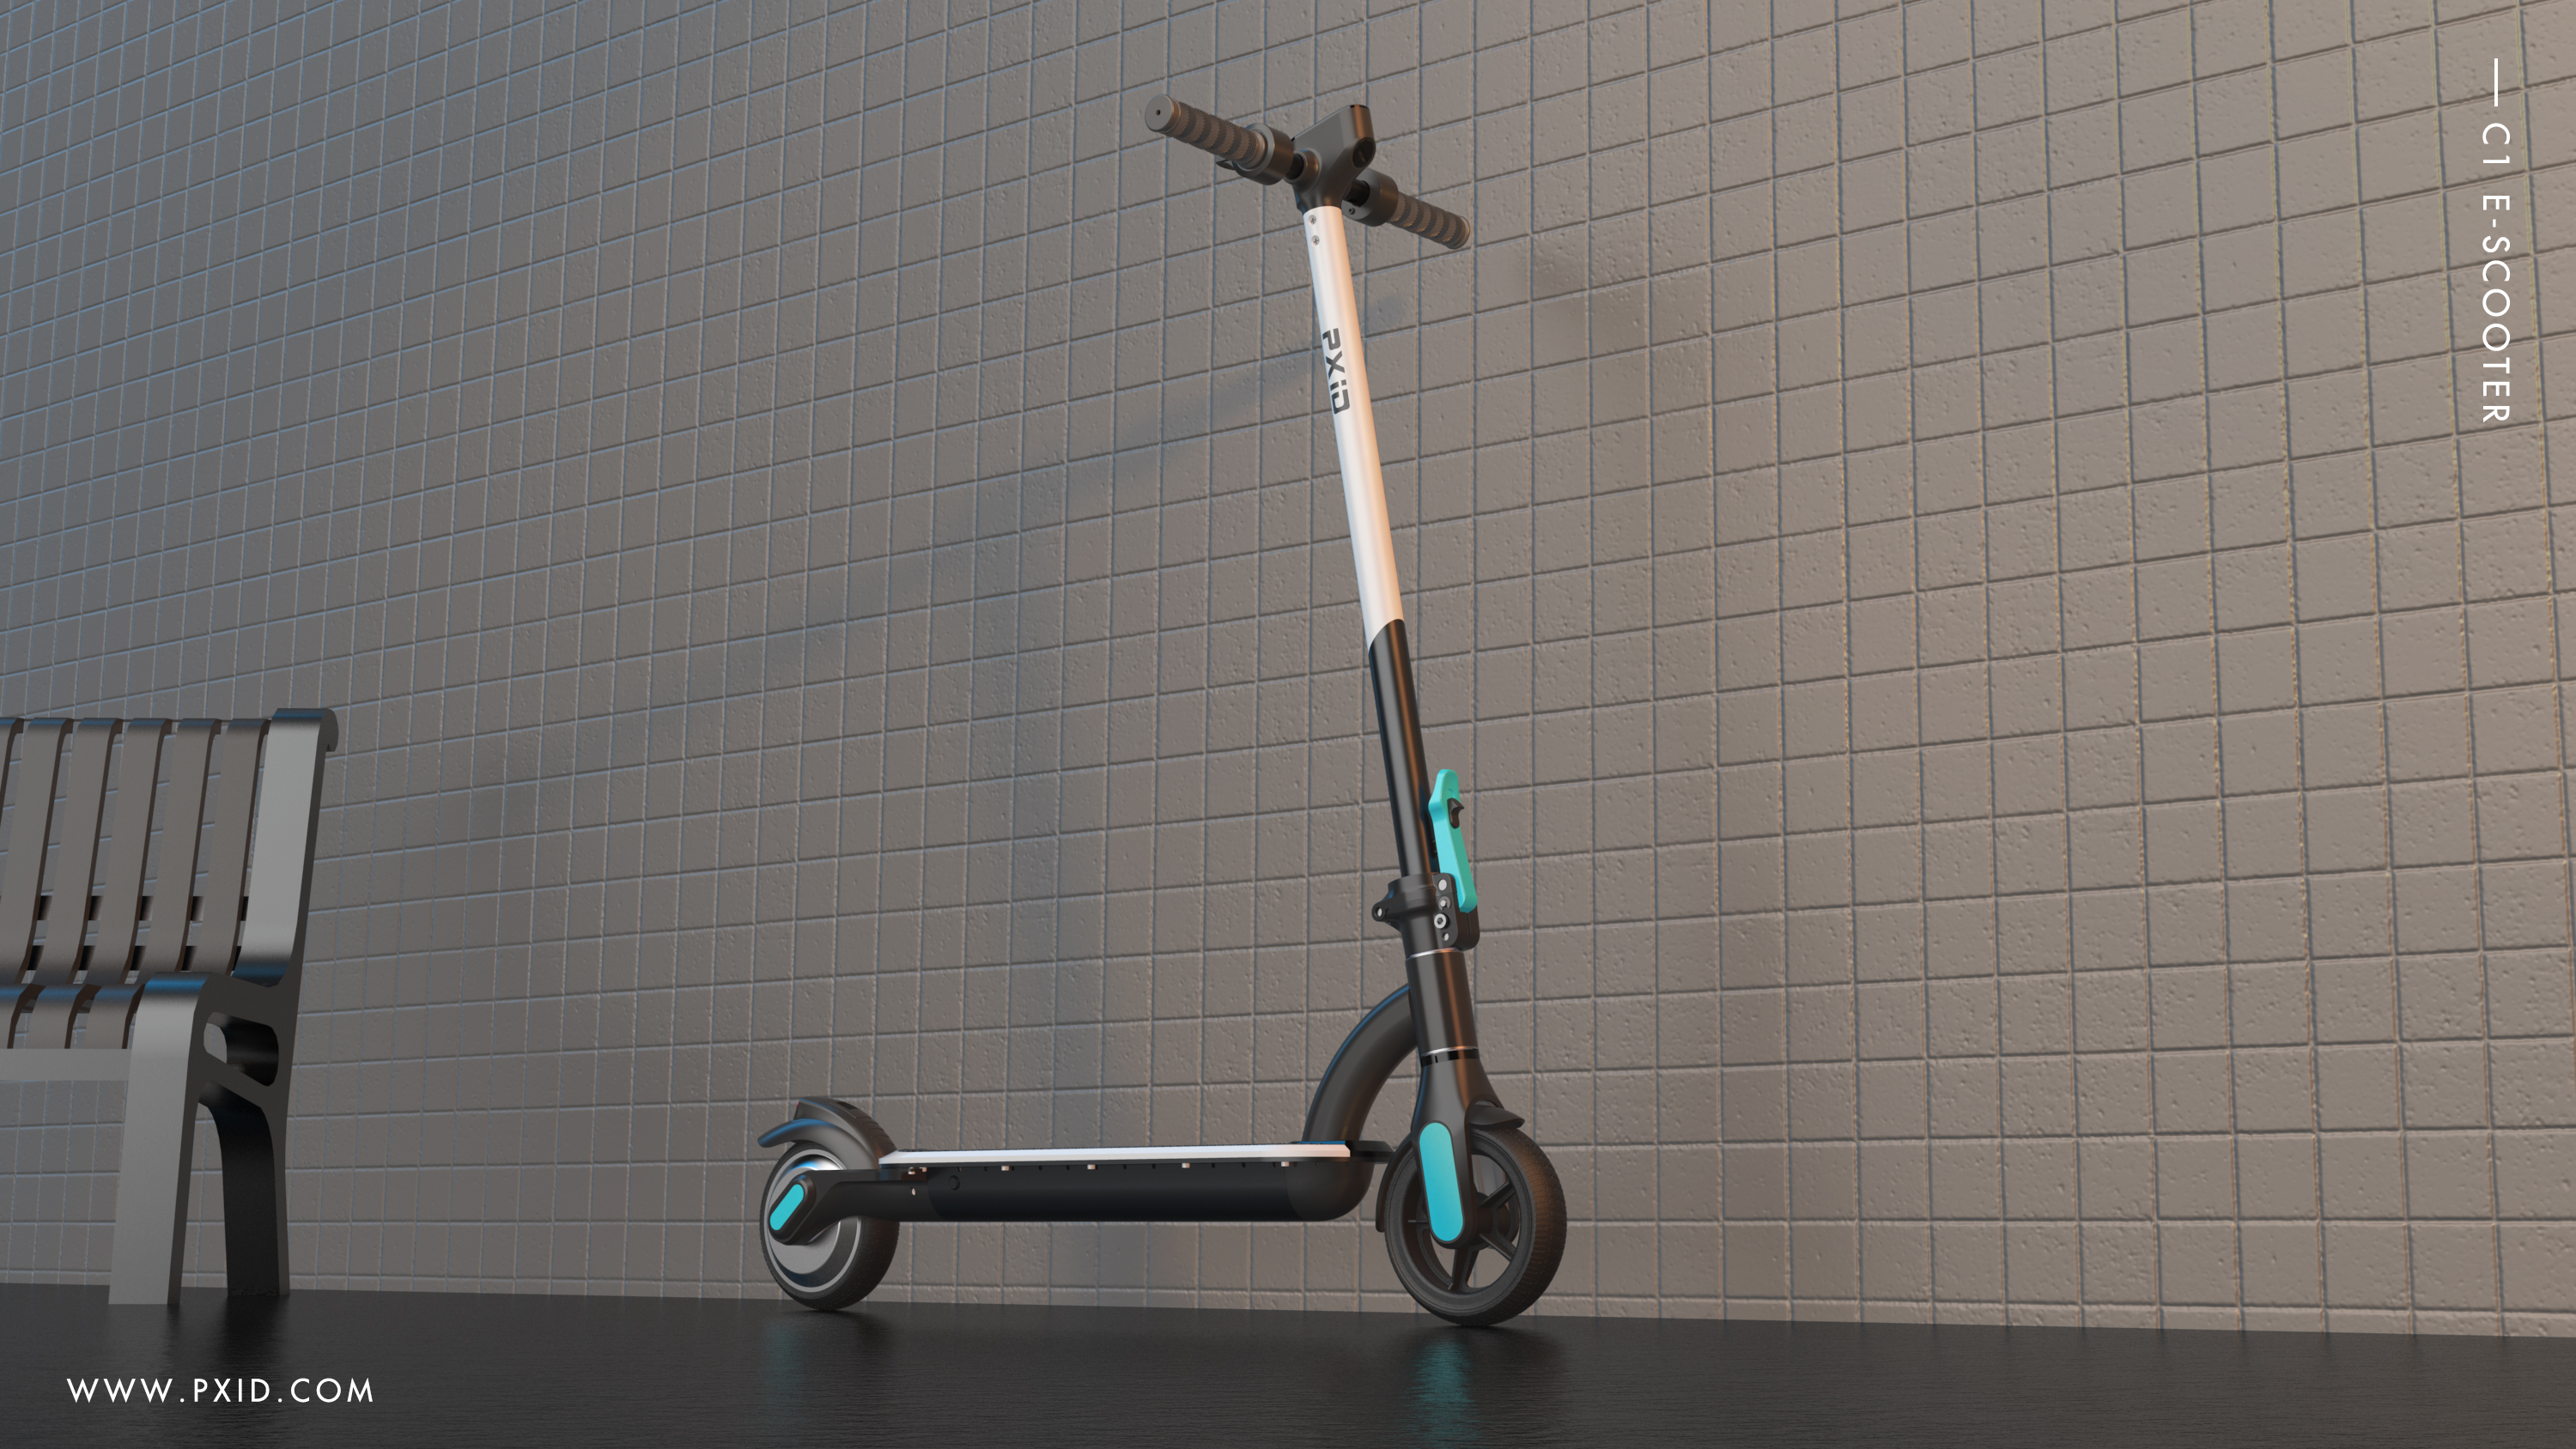 The latest scooter design in July 2020